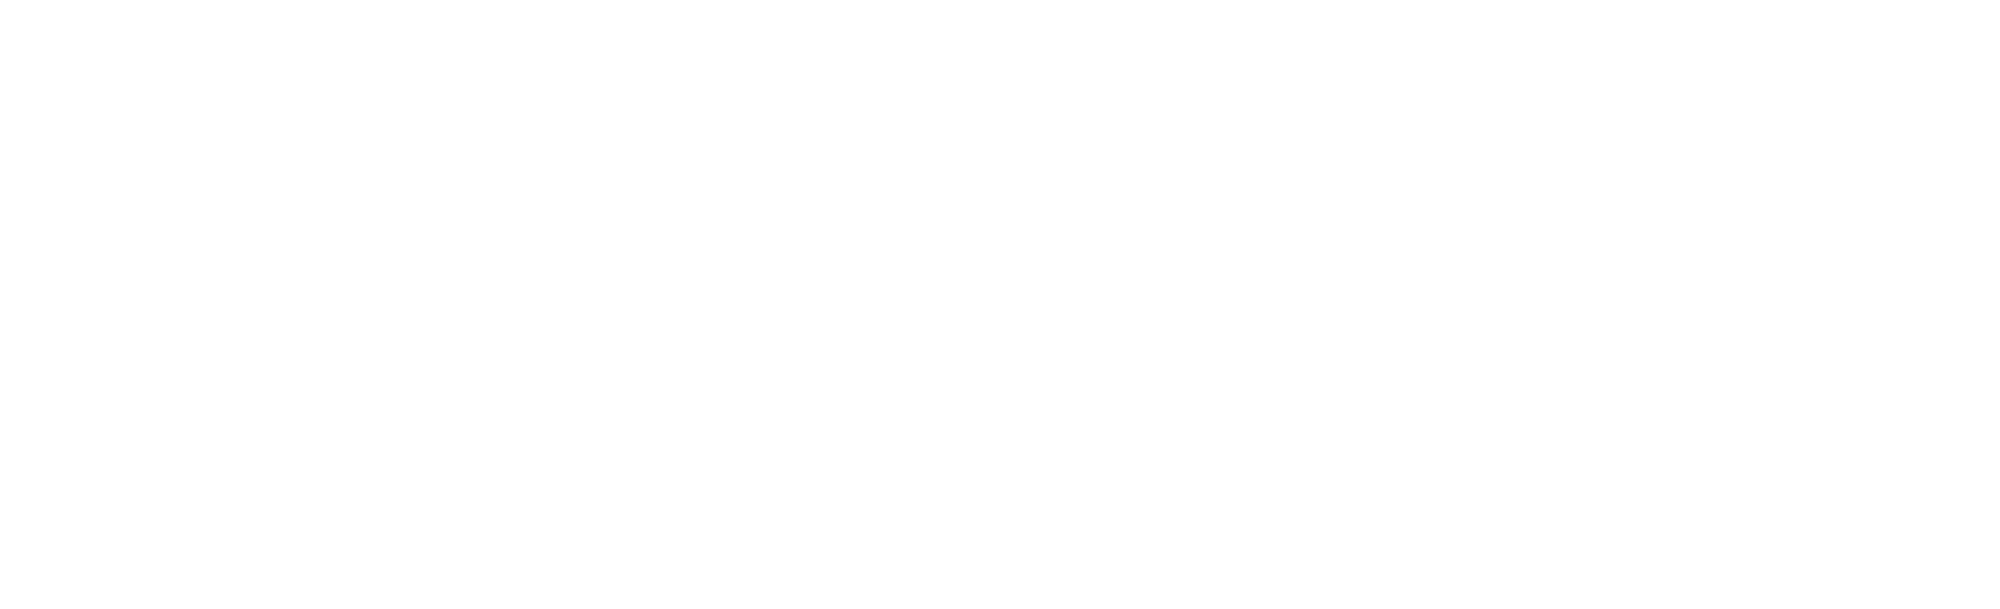 shop my gear.png